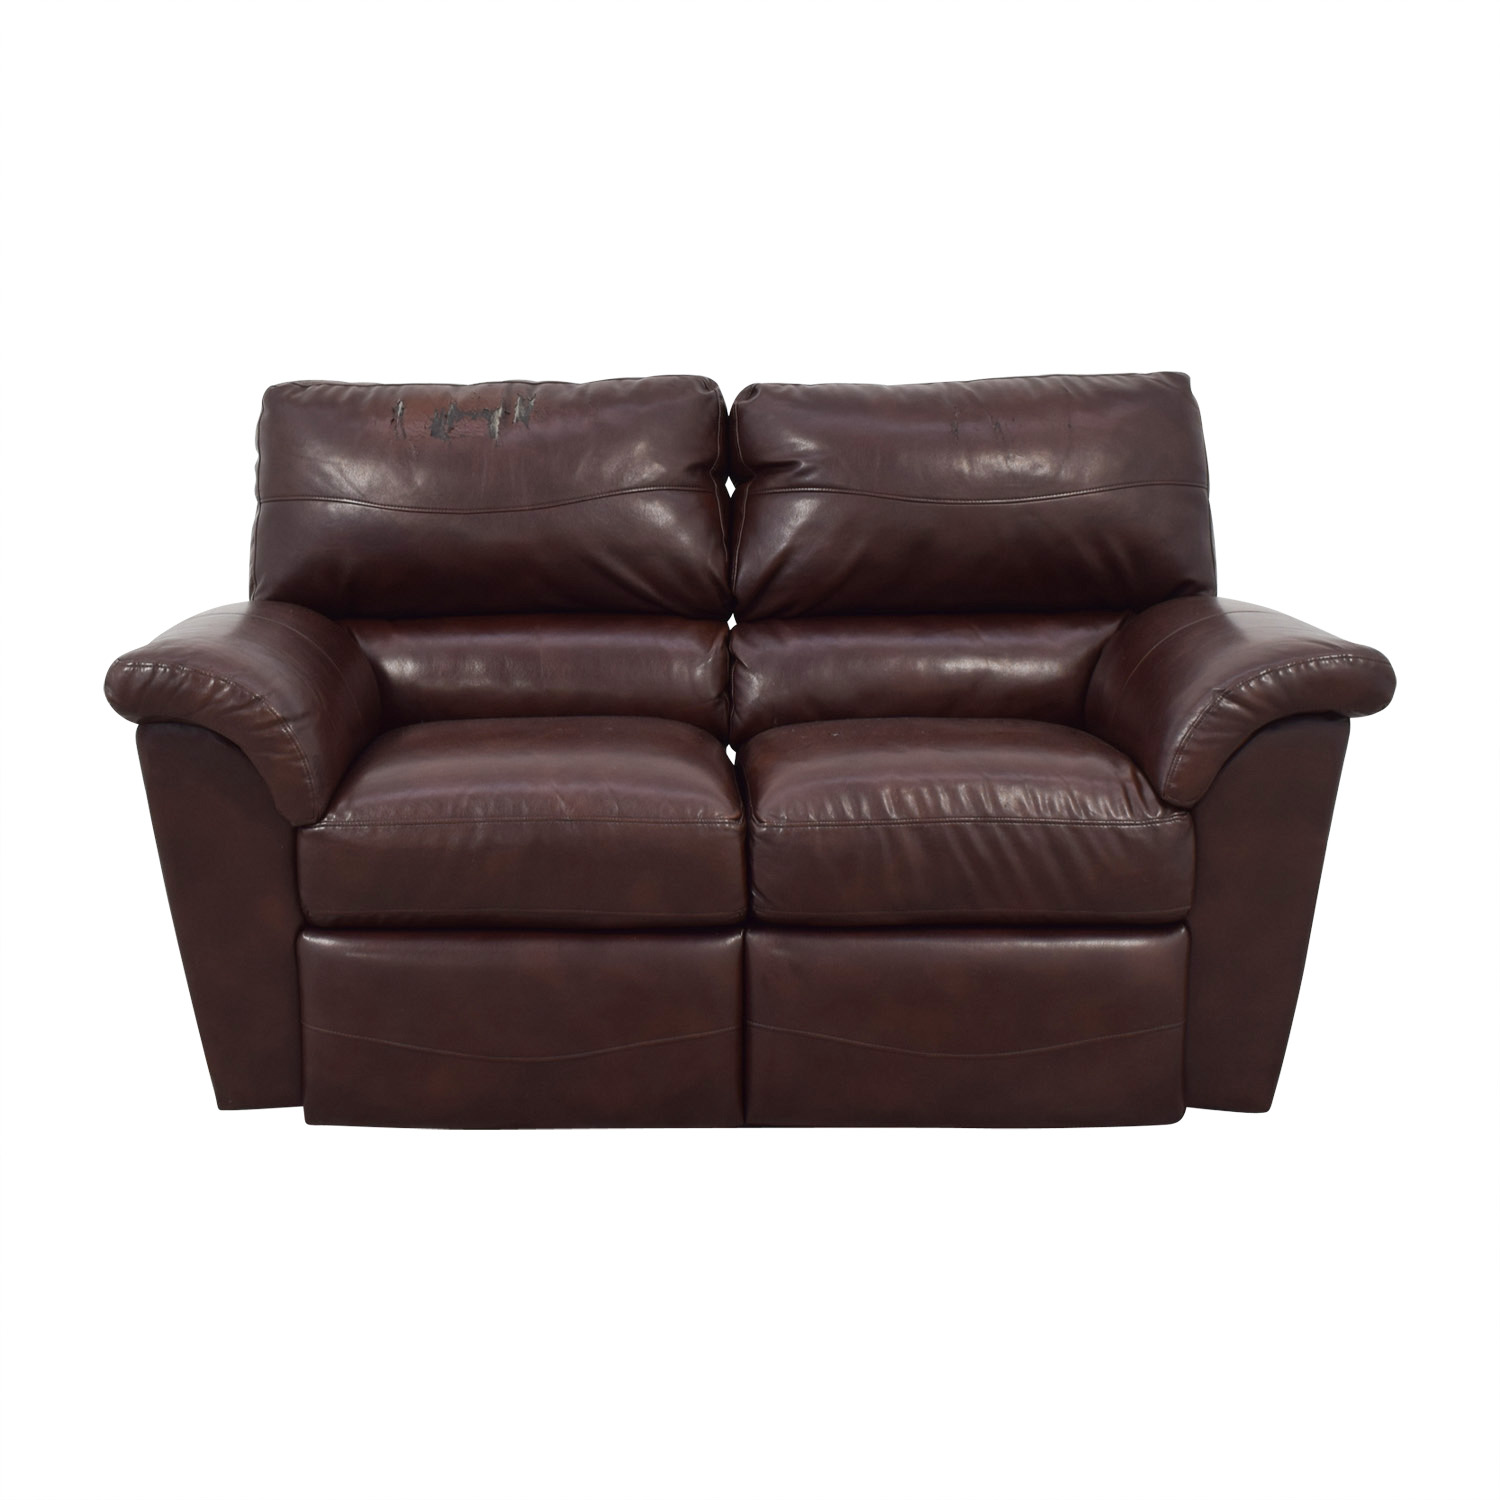 La-Z-Boy La Z Boy Oscar Leather Reclining Love Seat Sofas